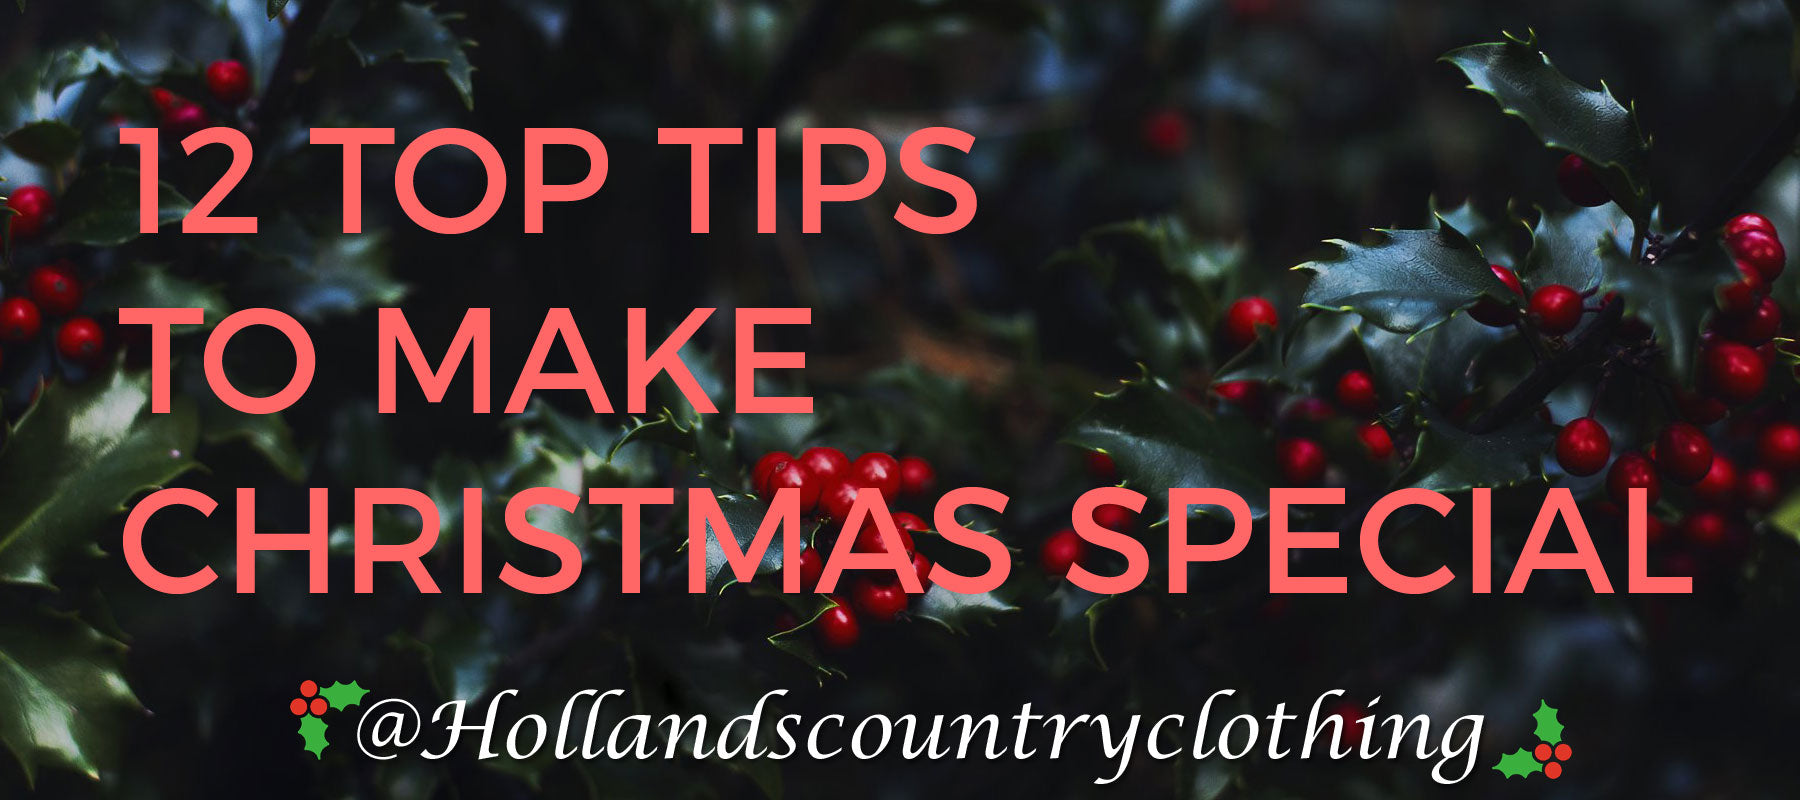 12 tips to make your Christmas special